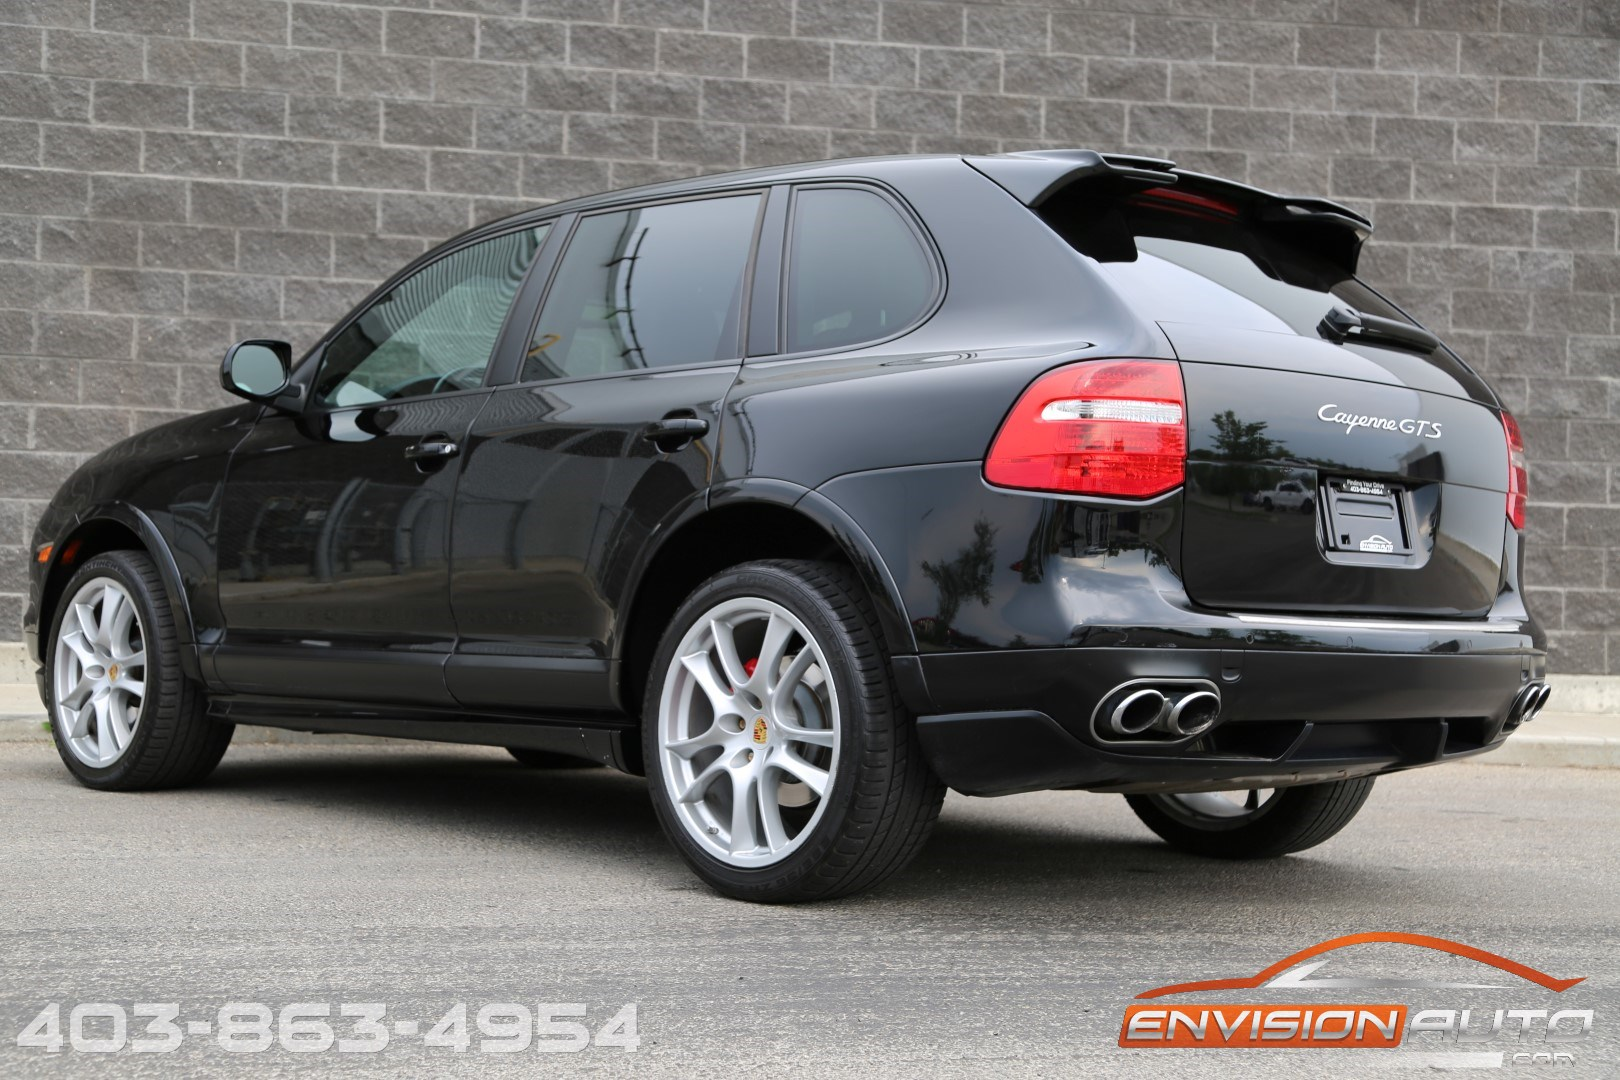 2009 porsche cayenne gts 1 owner clean history envision auto calgary highline luxury sports. Black Bedroom Furniture Sets. Home Design Ideas